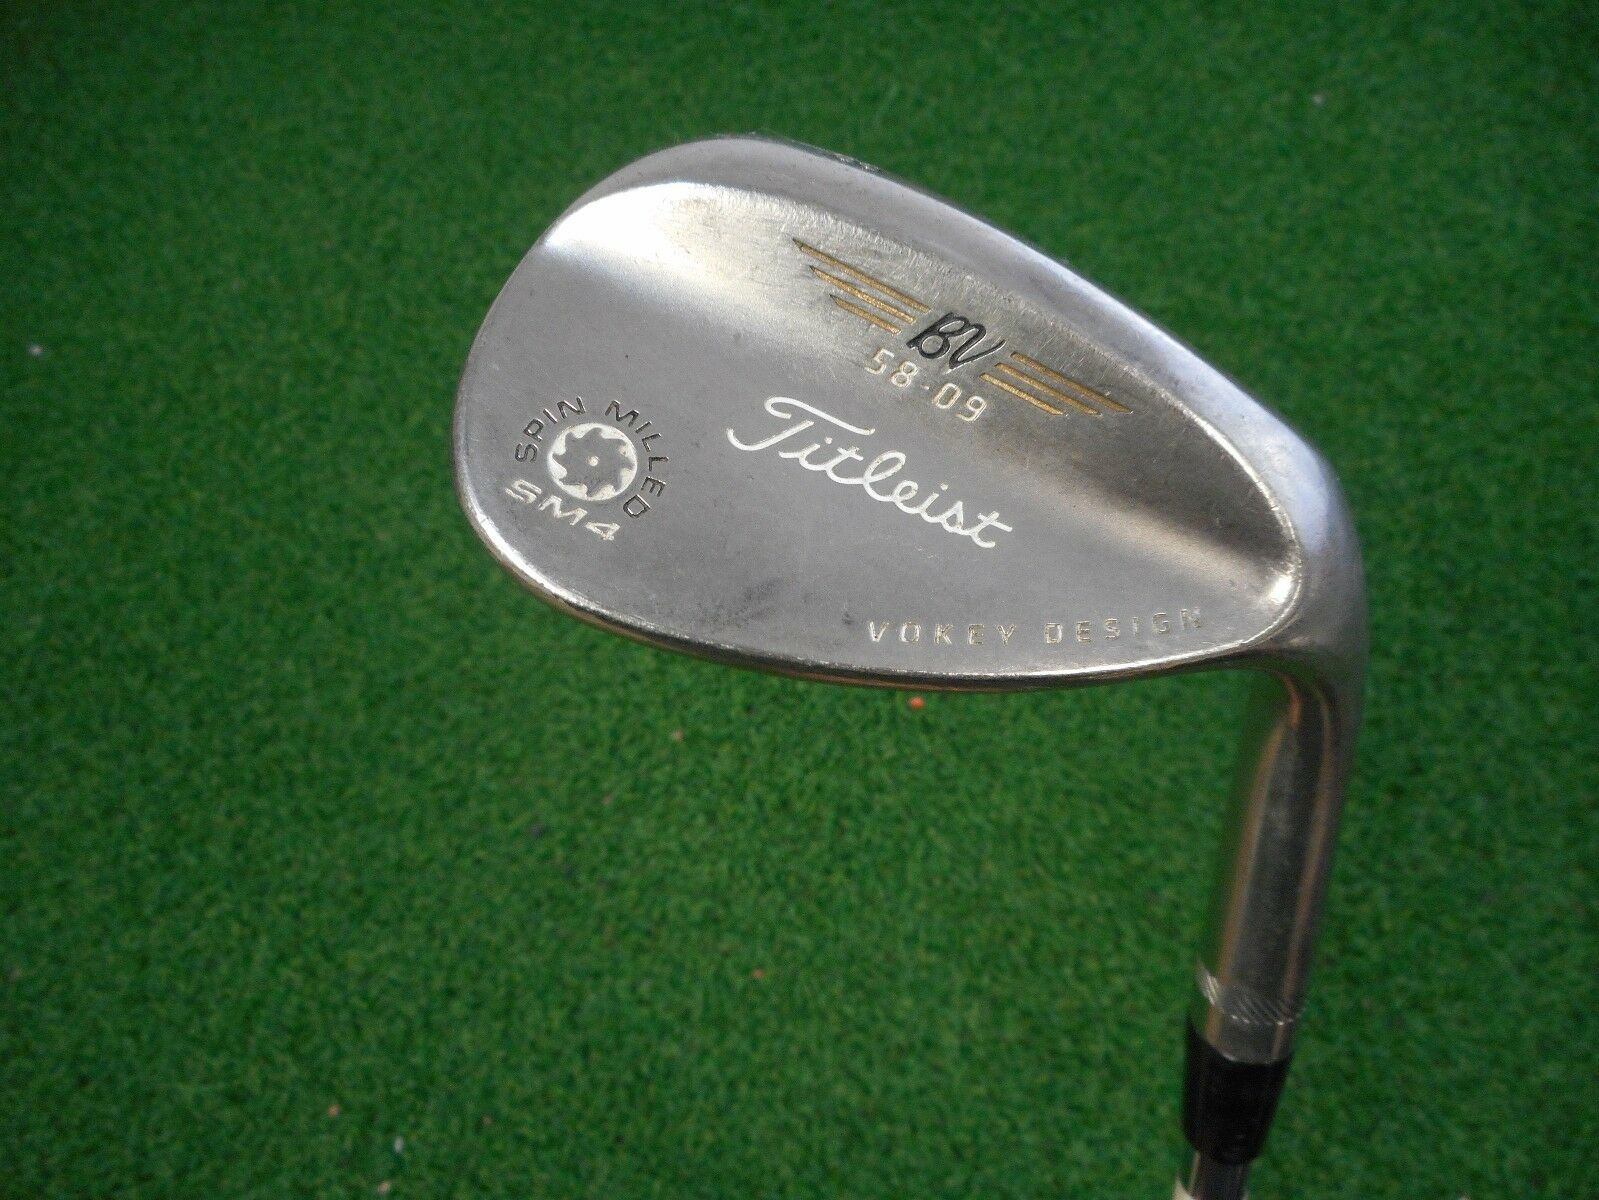 TITLEIST VOKEY SM4 58.09 LOB WEDGE N.S. PRO REGULAR FLEX STEEL USED RH